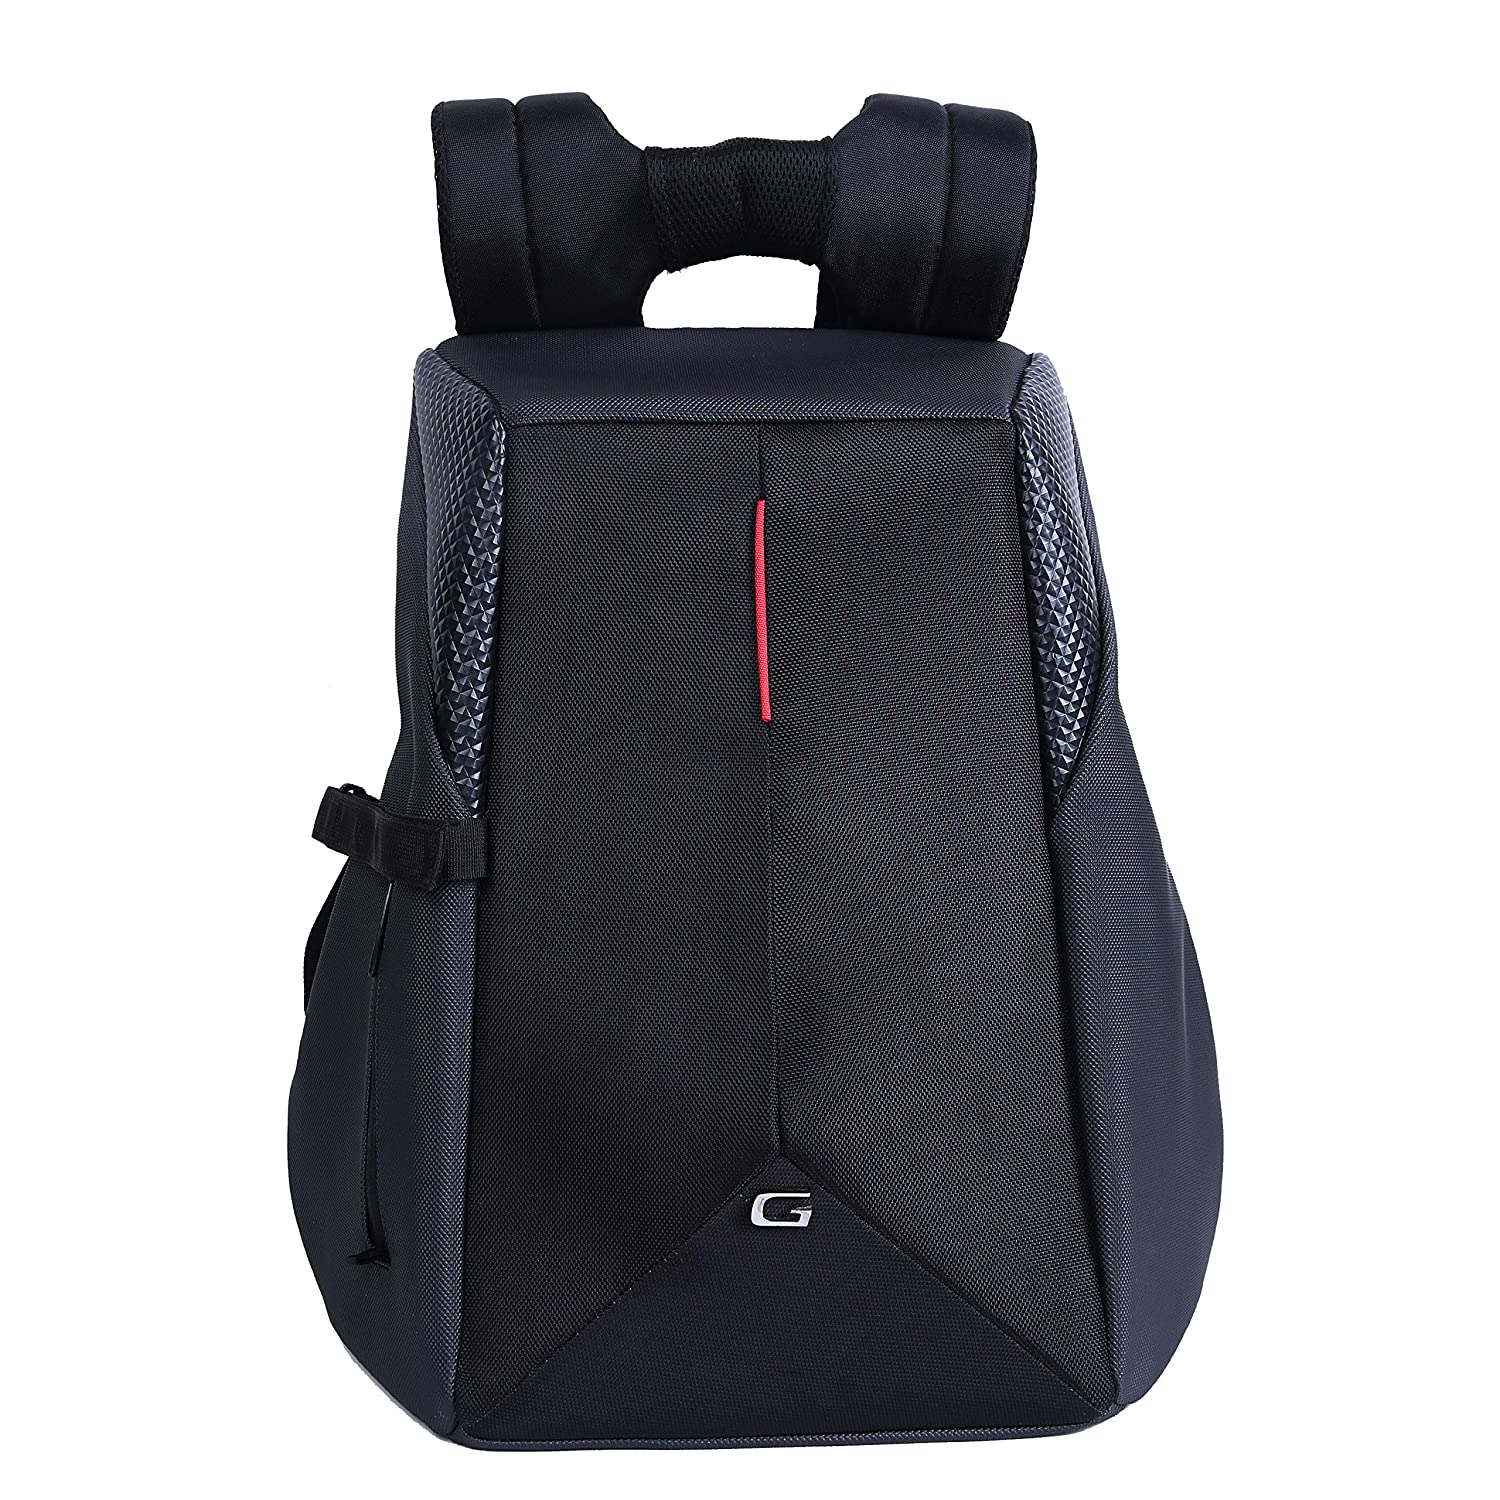 Gear Shell Anti Theft 32 Ltrs Black Laptop Backpack (LBPSHLTEF0109)